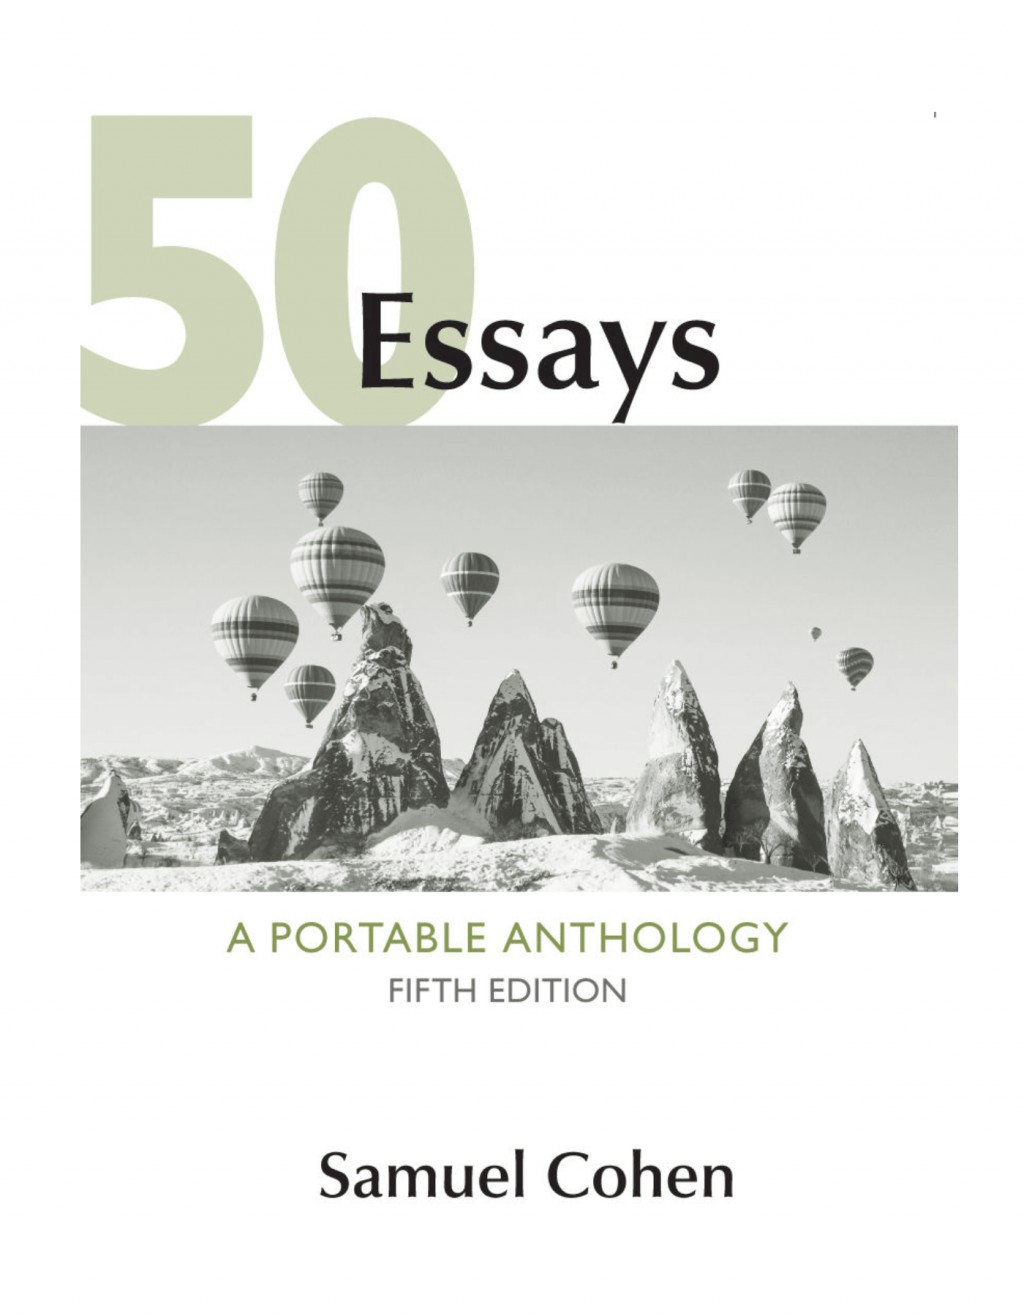 015 50fit14002c1800ssl1 Essay Example Real Essays With Readings 5th Wonderful Edition Answer Key Online Ebook Large